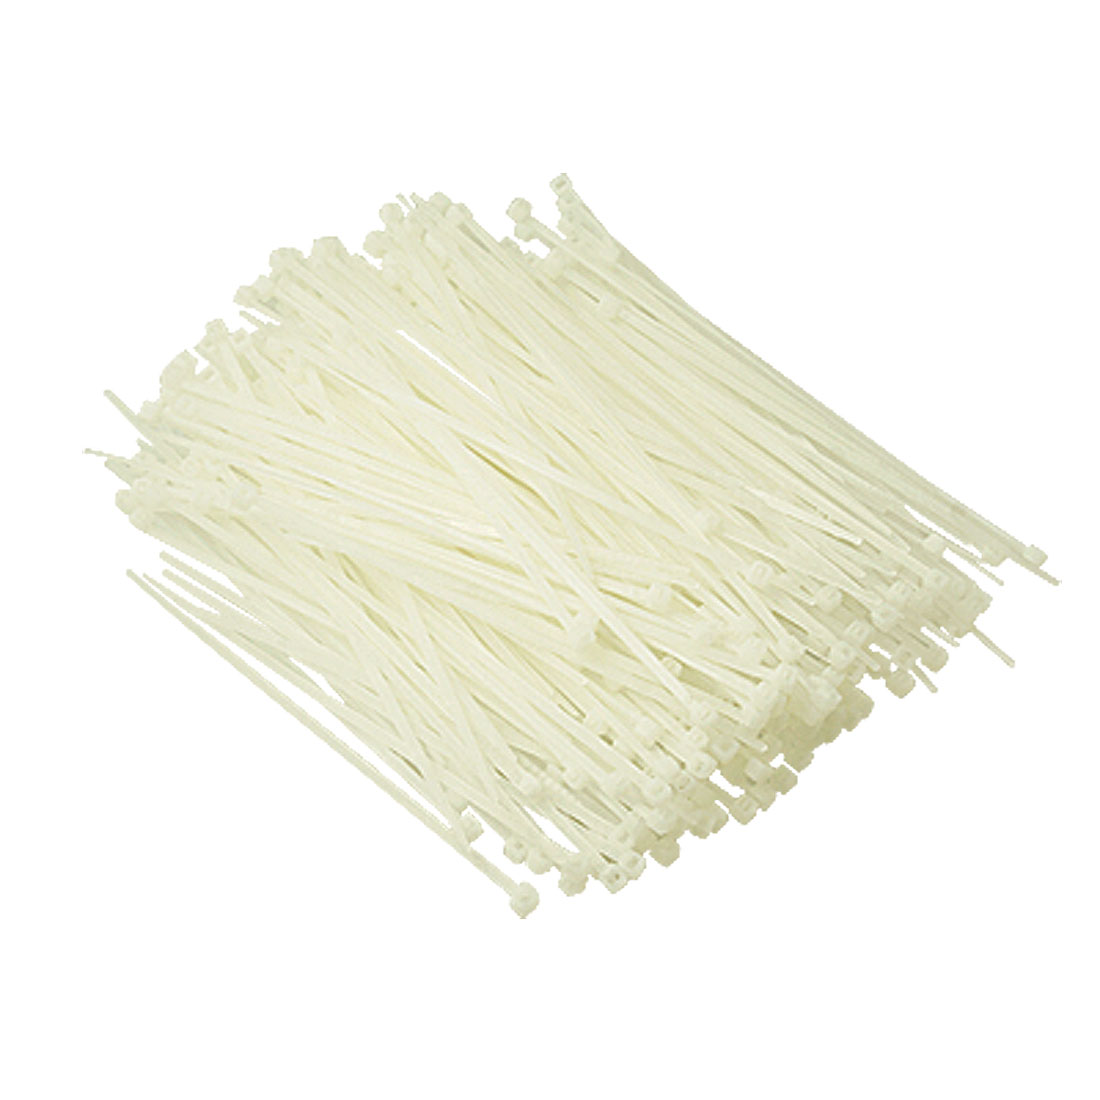 12cm Length Off White Self-locking Nylon Cable Tie